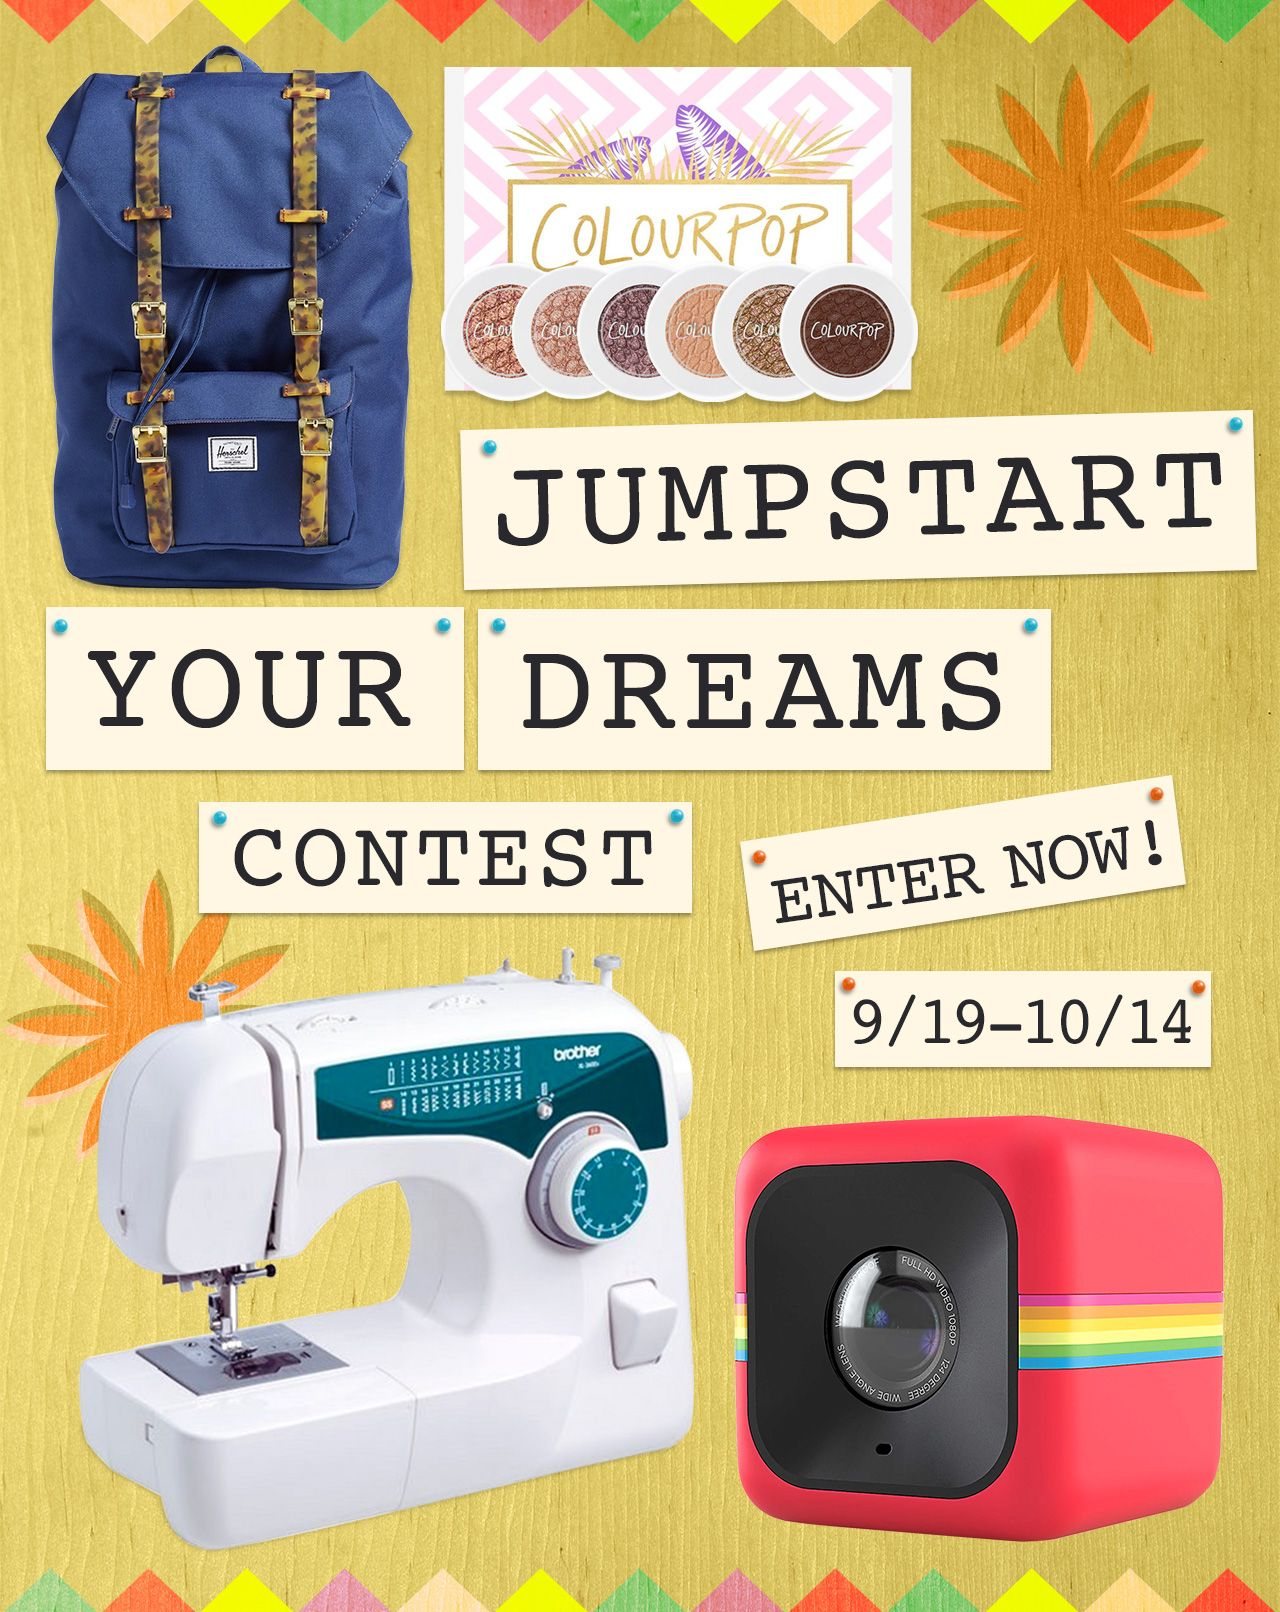 Win A Prize Pack When You Pin Images Related To Your Dream Career